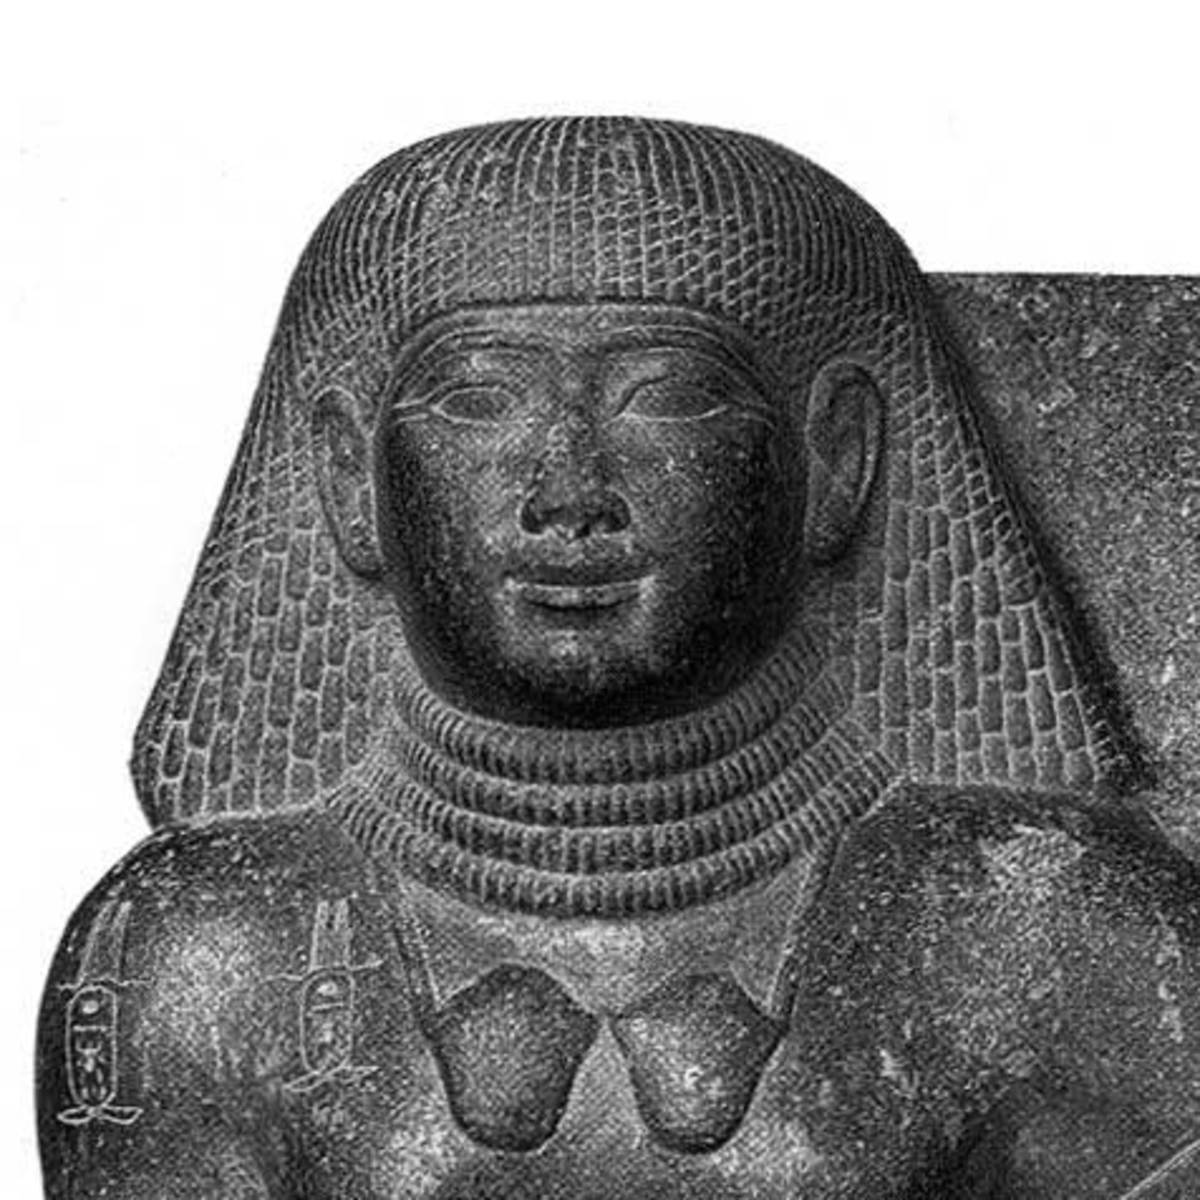 The statue and image of Thutmosis IV